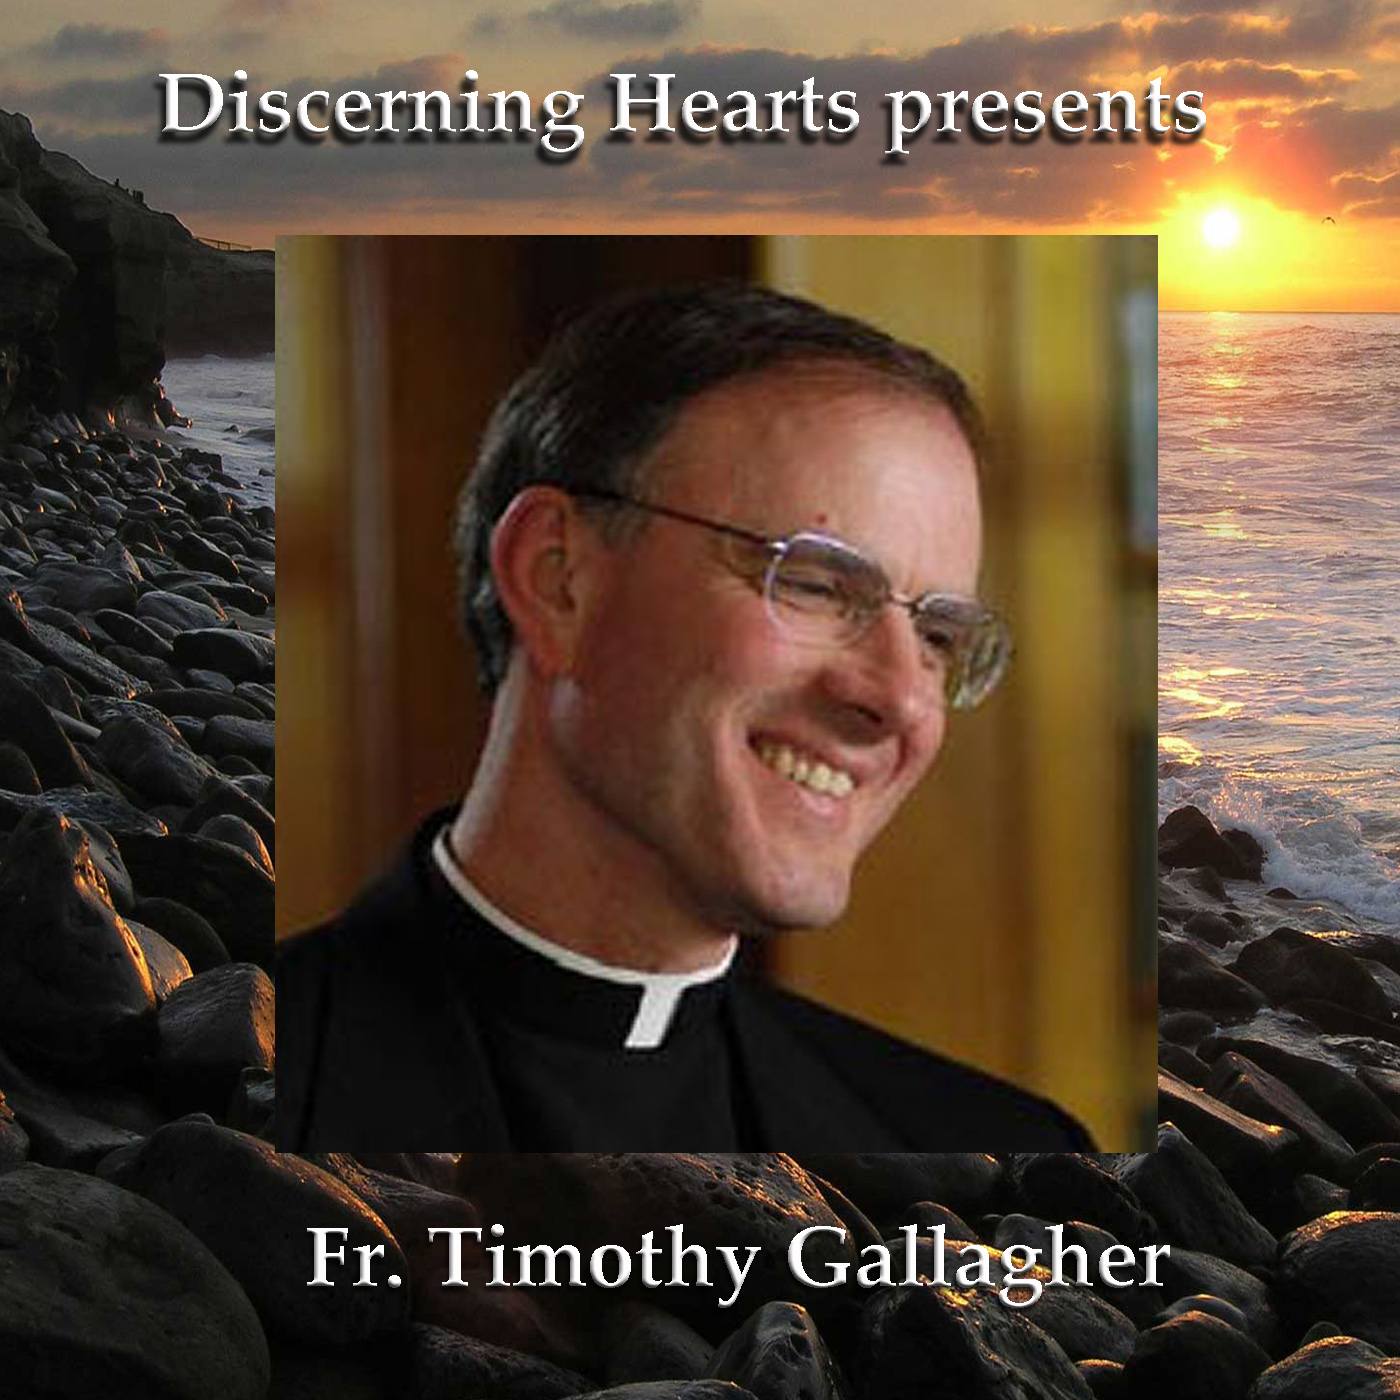 Discerning Hearts Catholic Podcasts » Fr. Timothy Gallagher